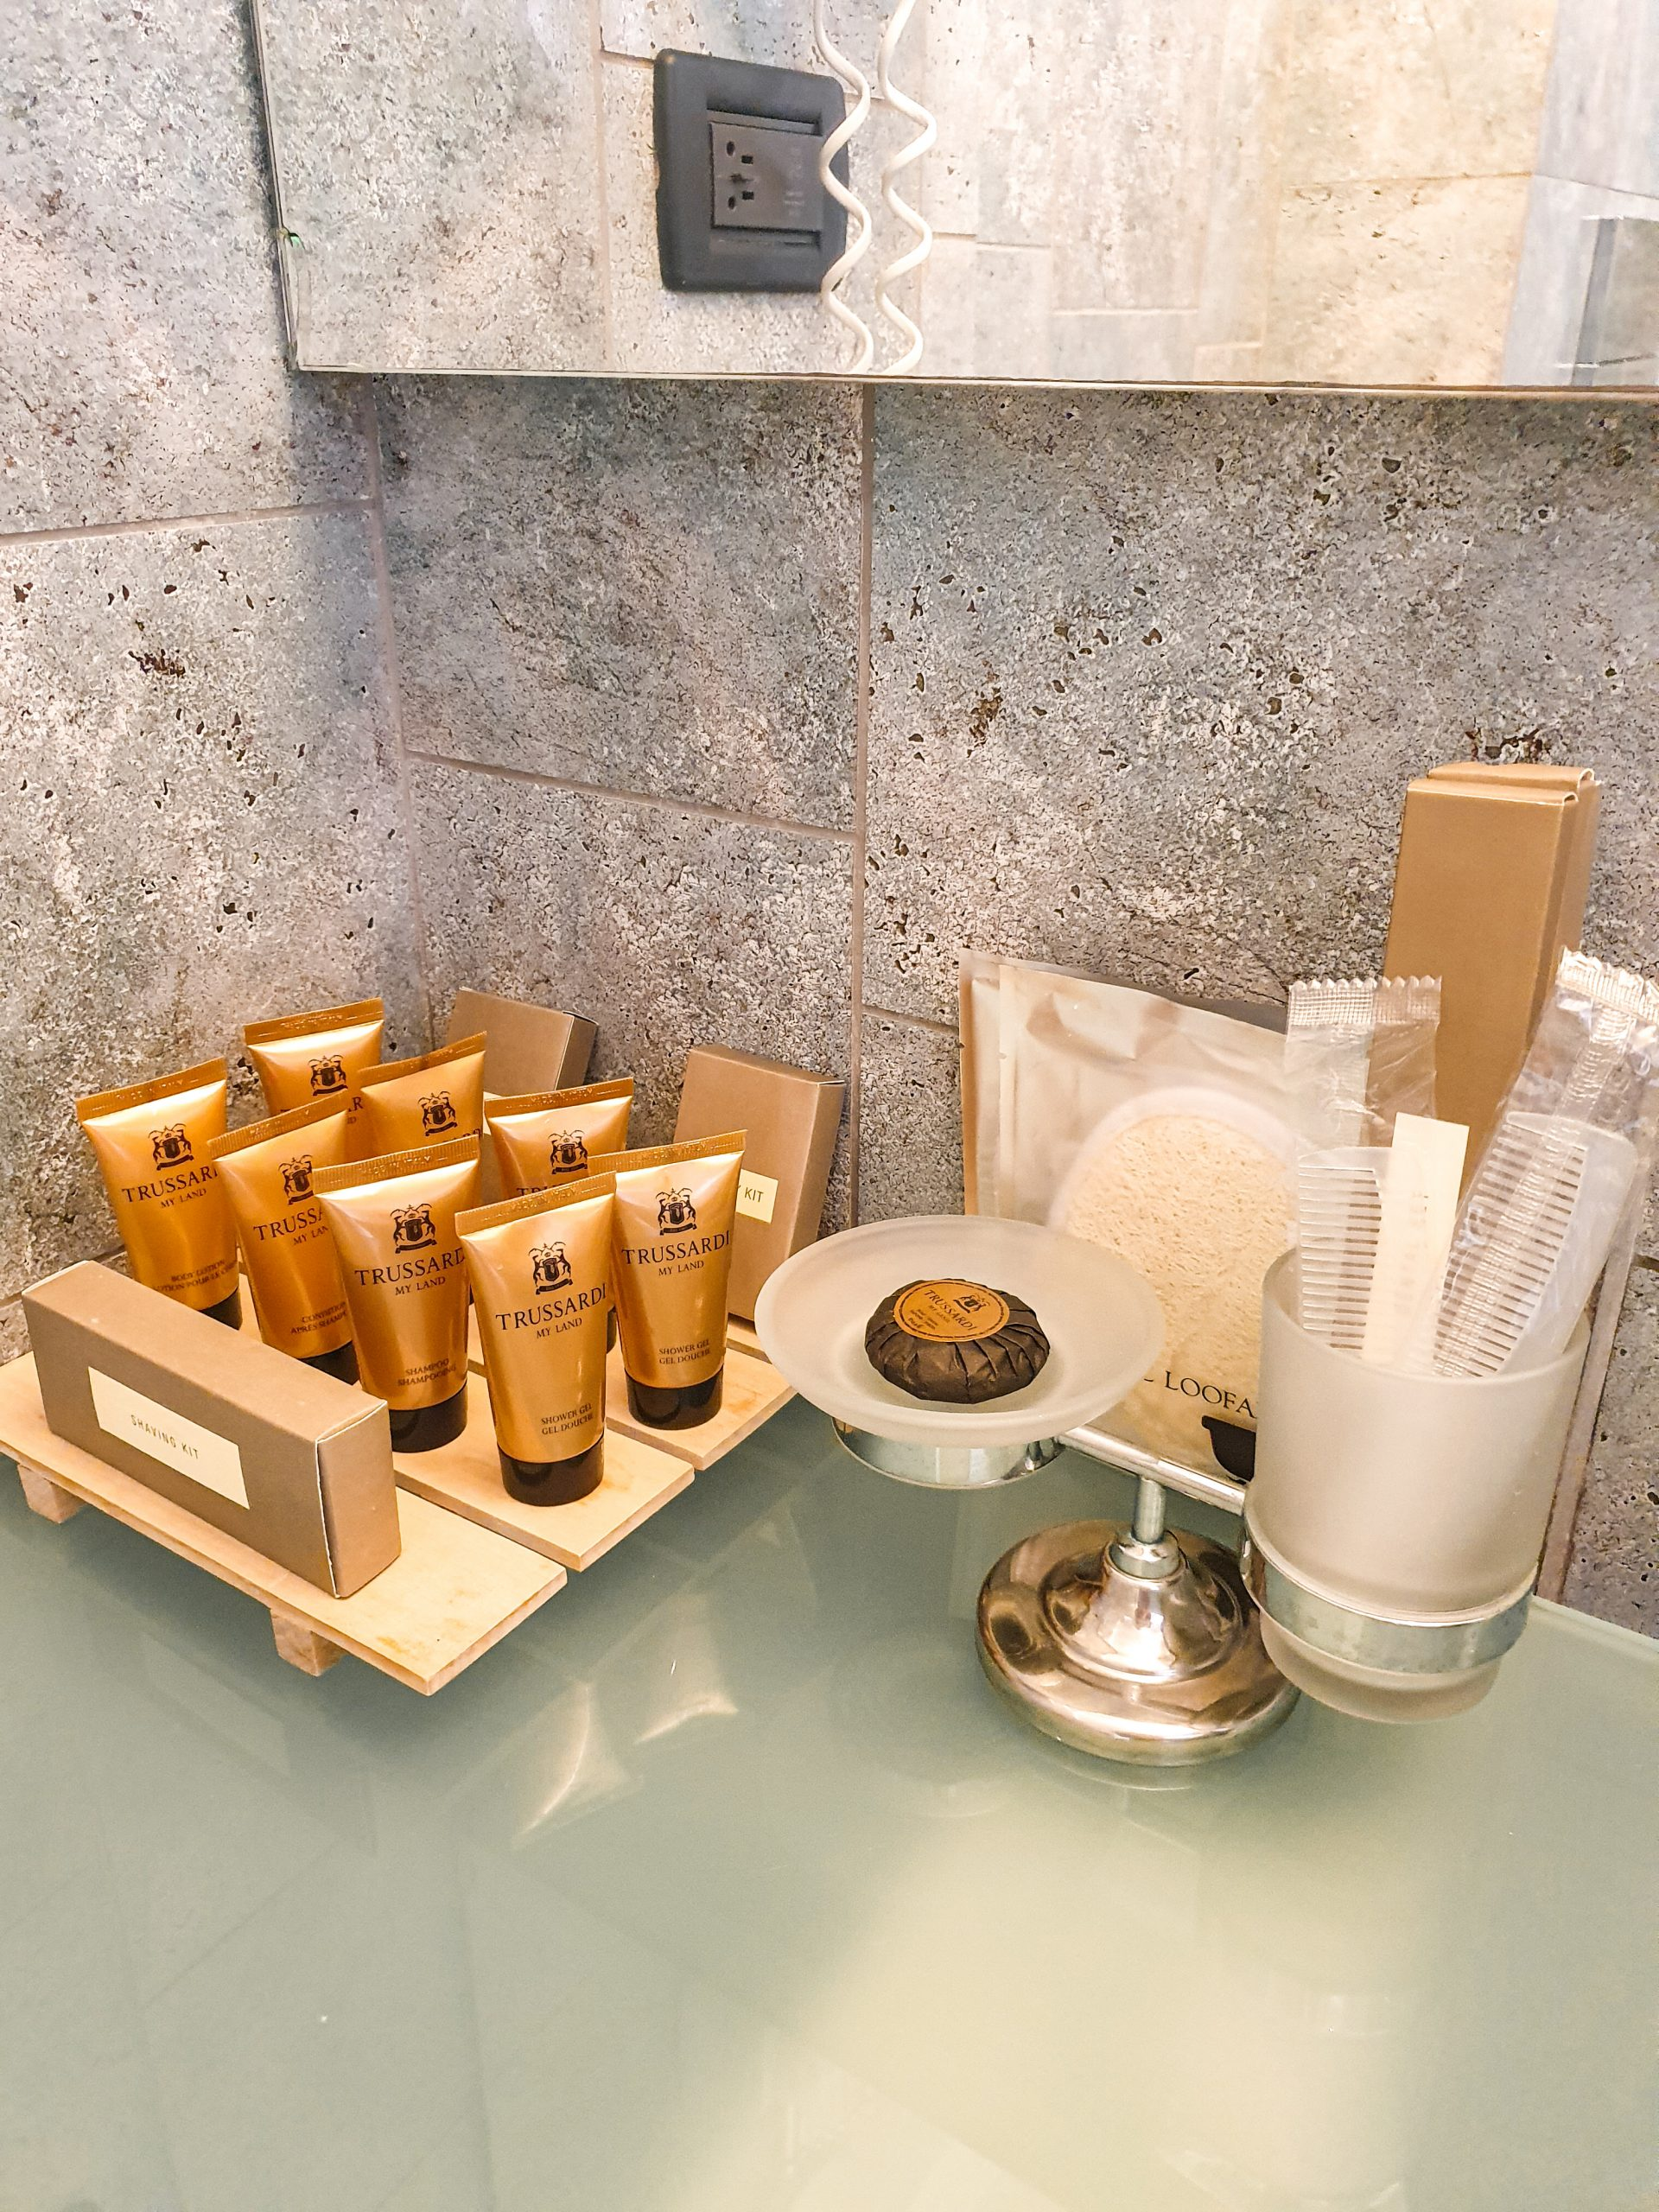 Alas Resort & Spa self care products